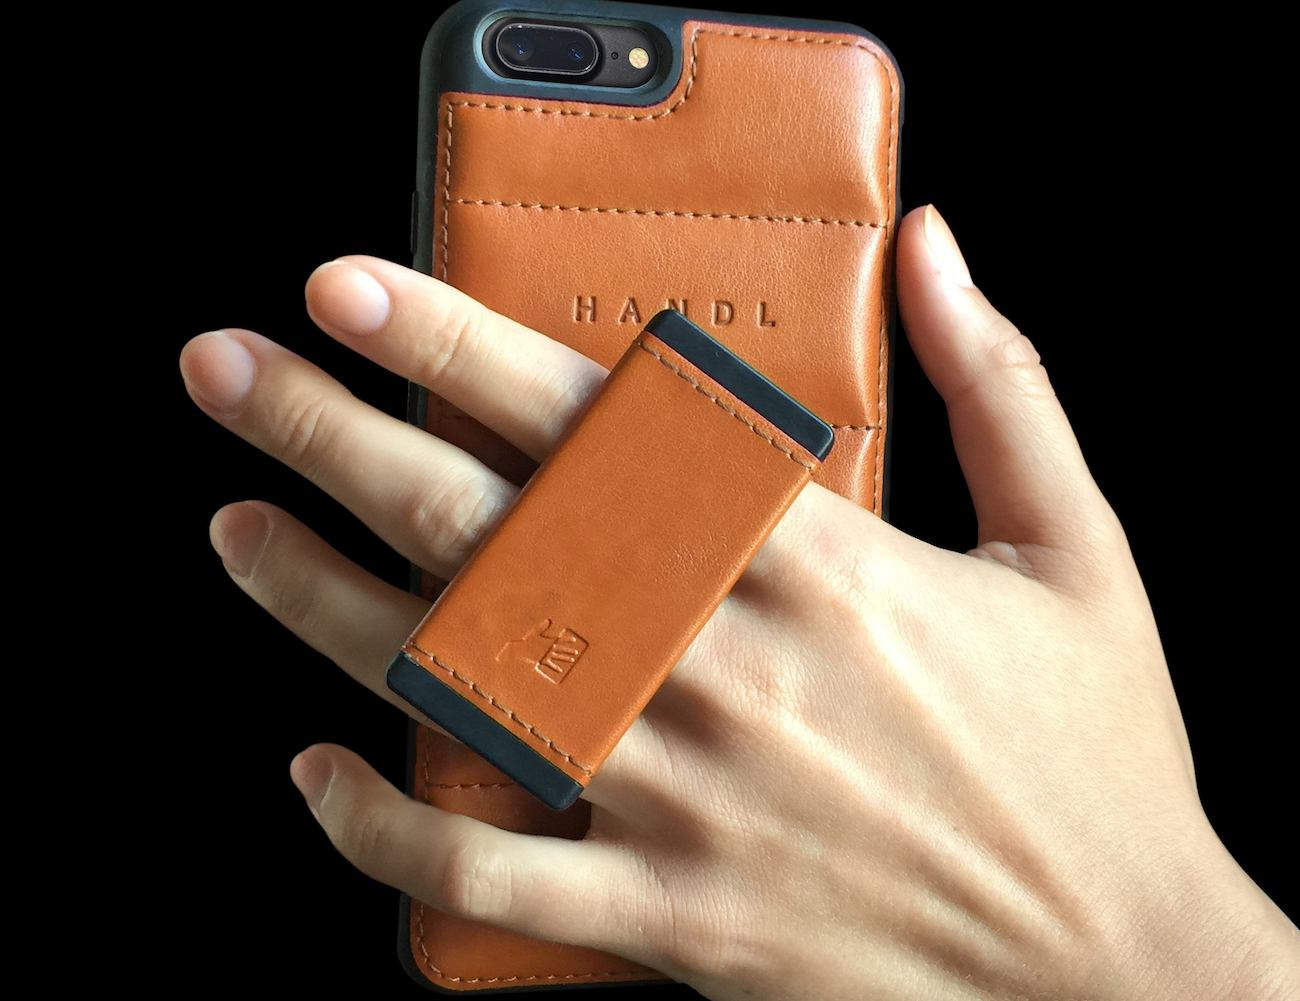 HandL iPhone 7 Gripless Case